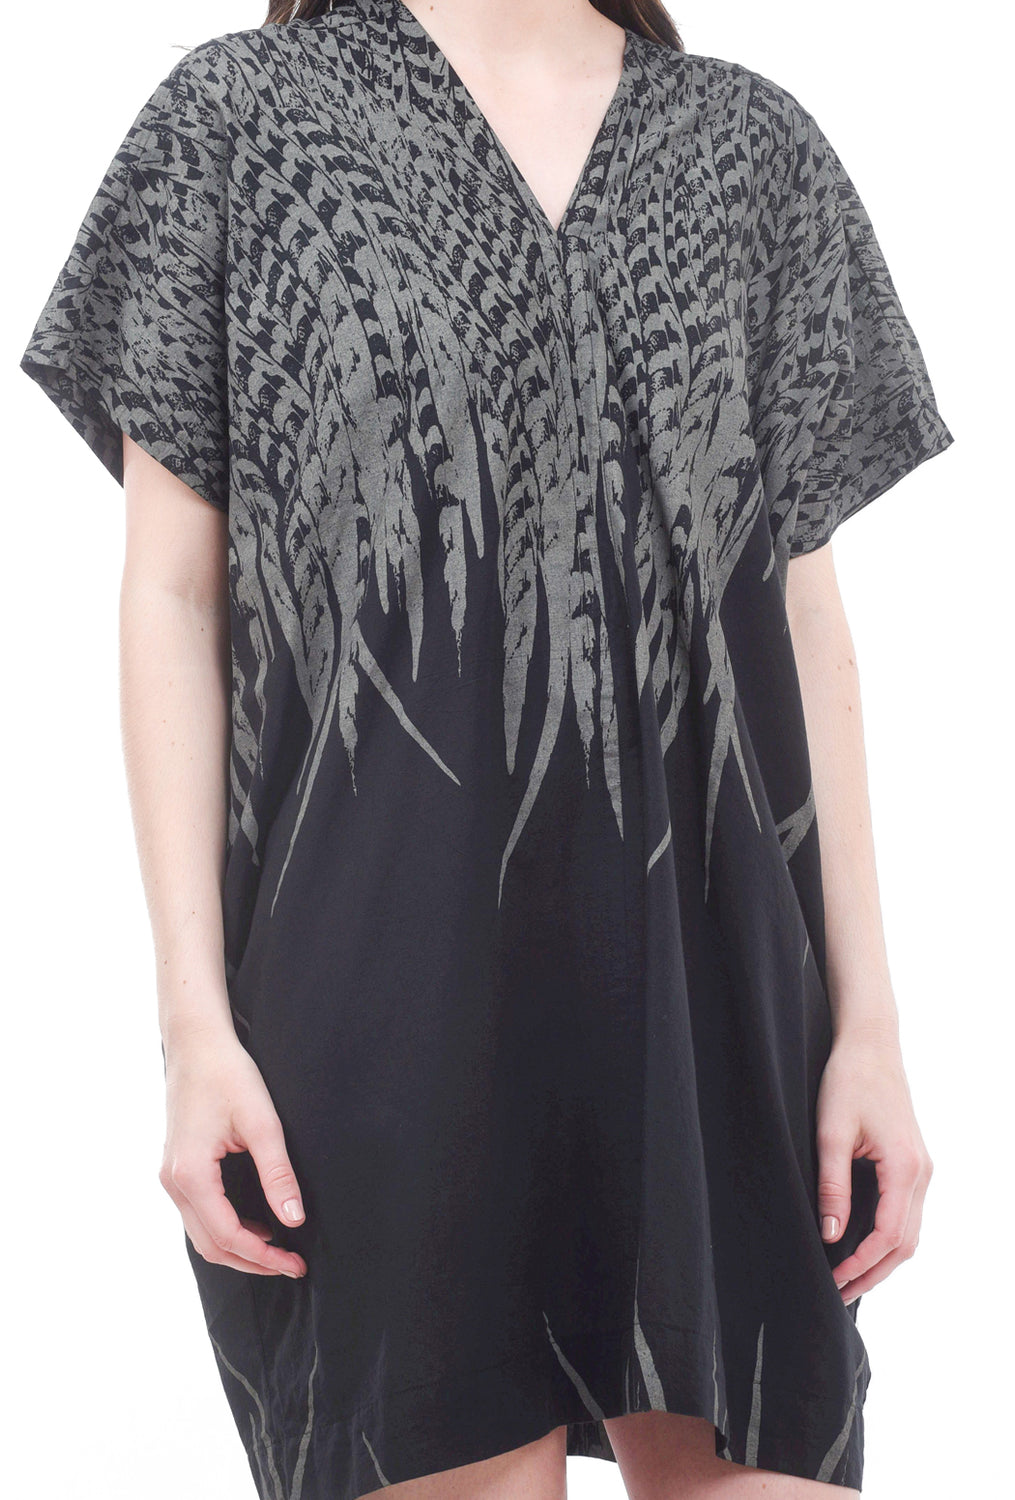 Uzi NYC Uzi V Dress, Black Feather